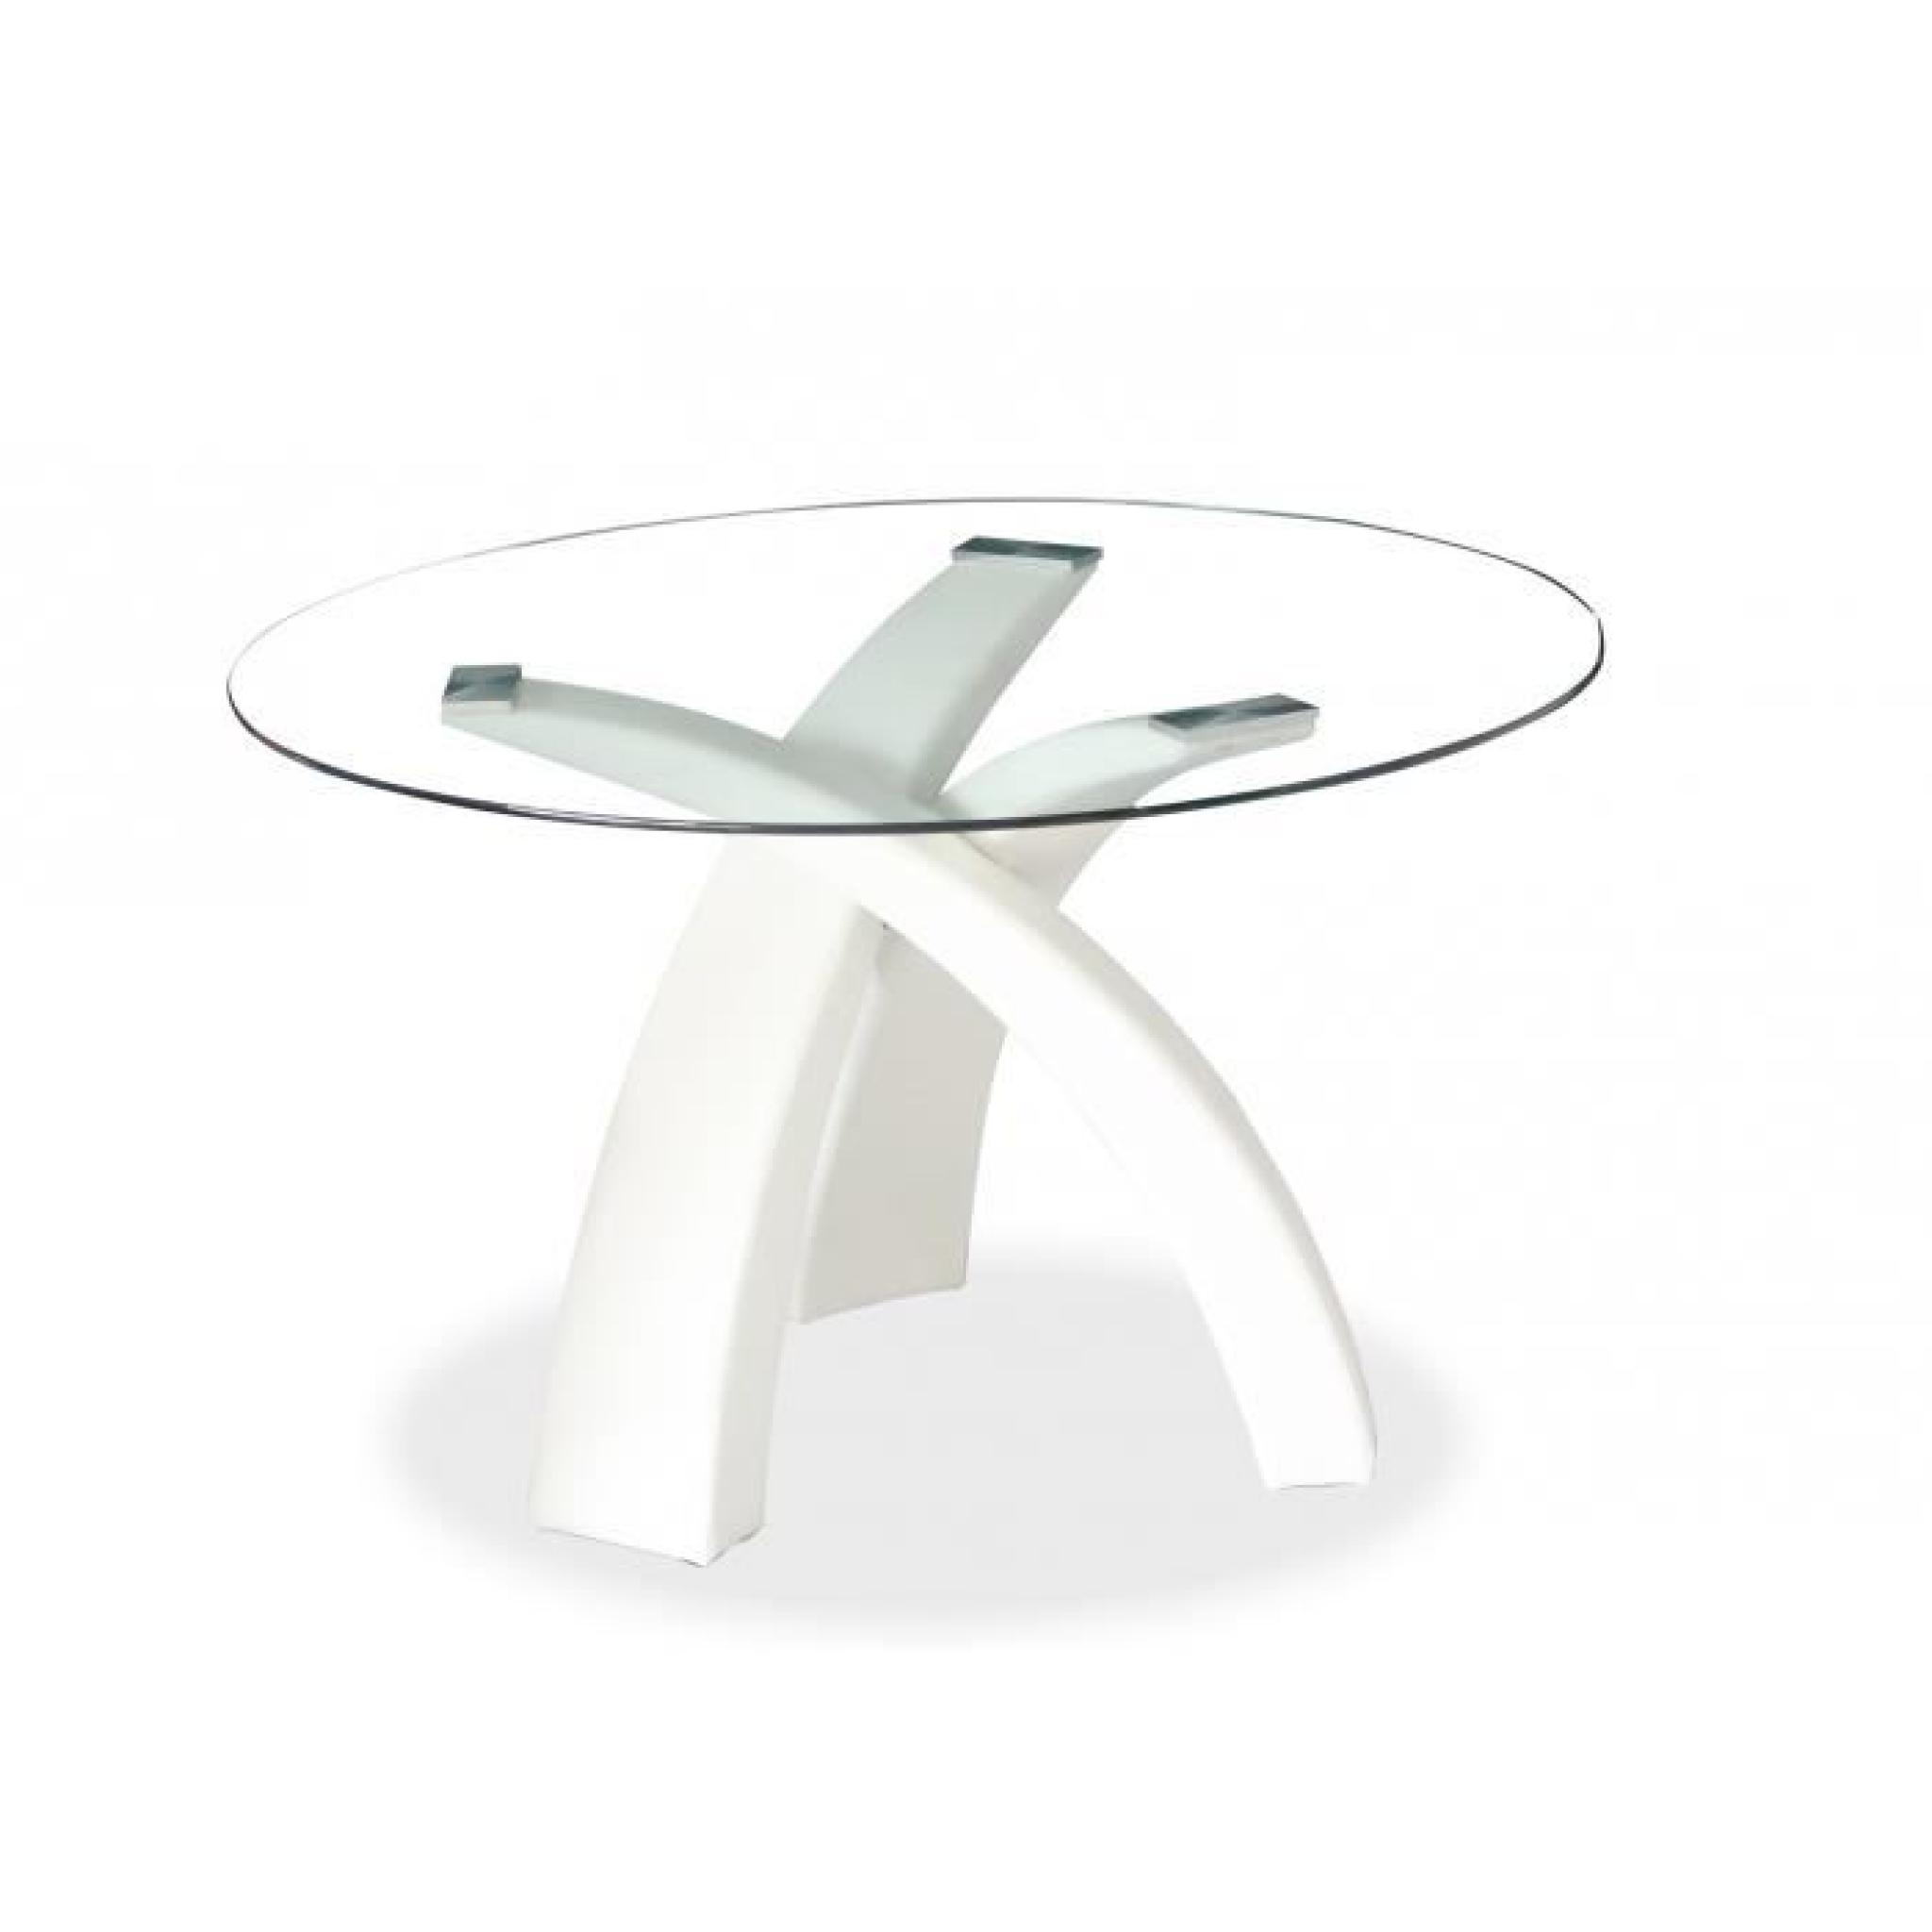 Table manger ronde blanche gore achat vente table for Table a manger ronde en verre